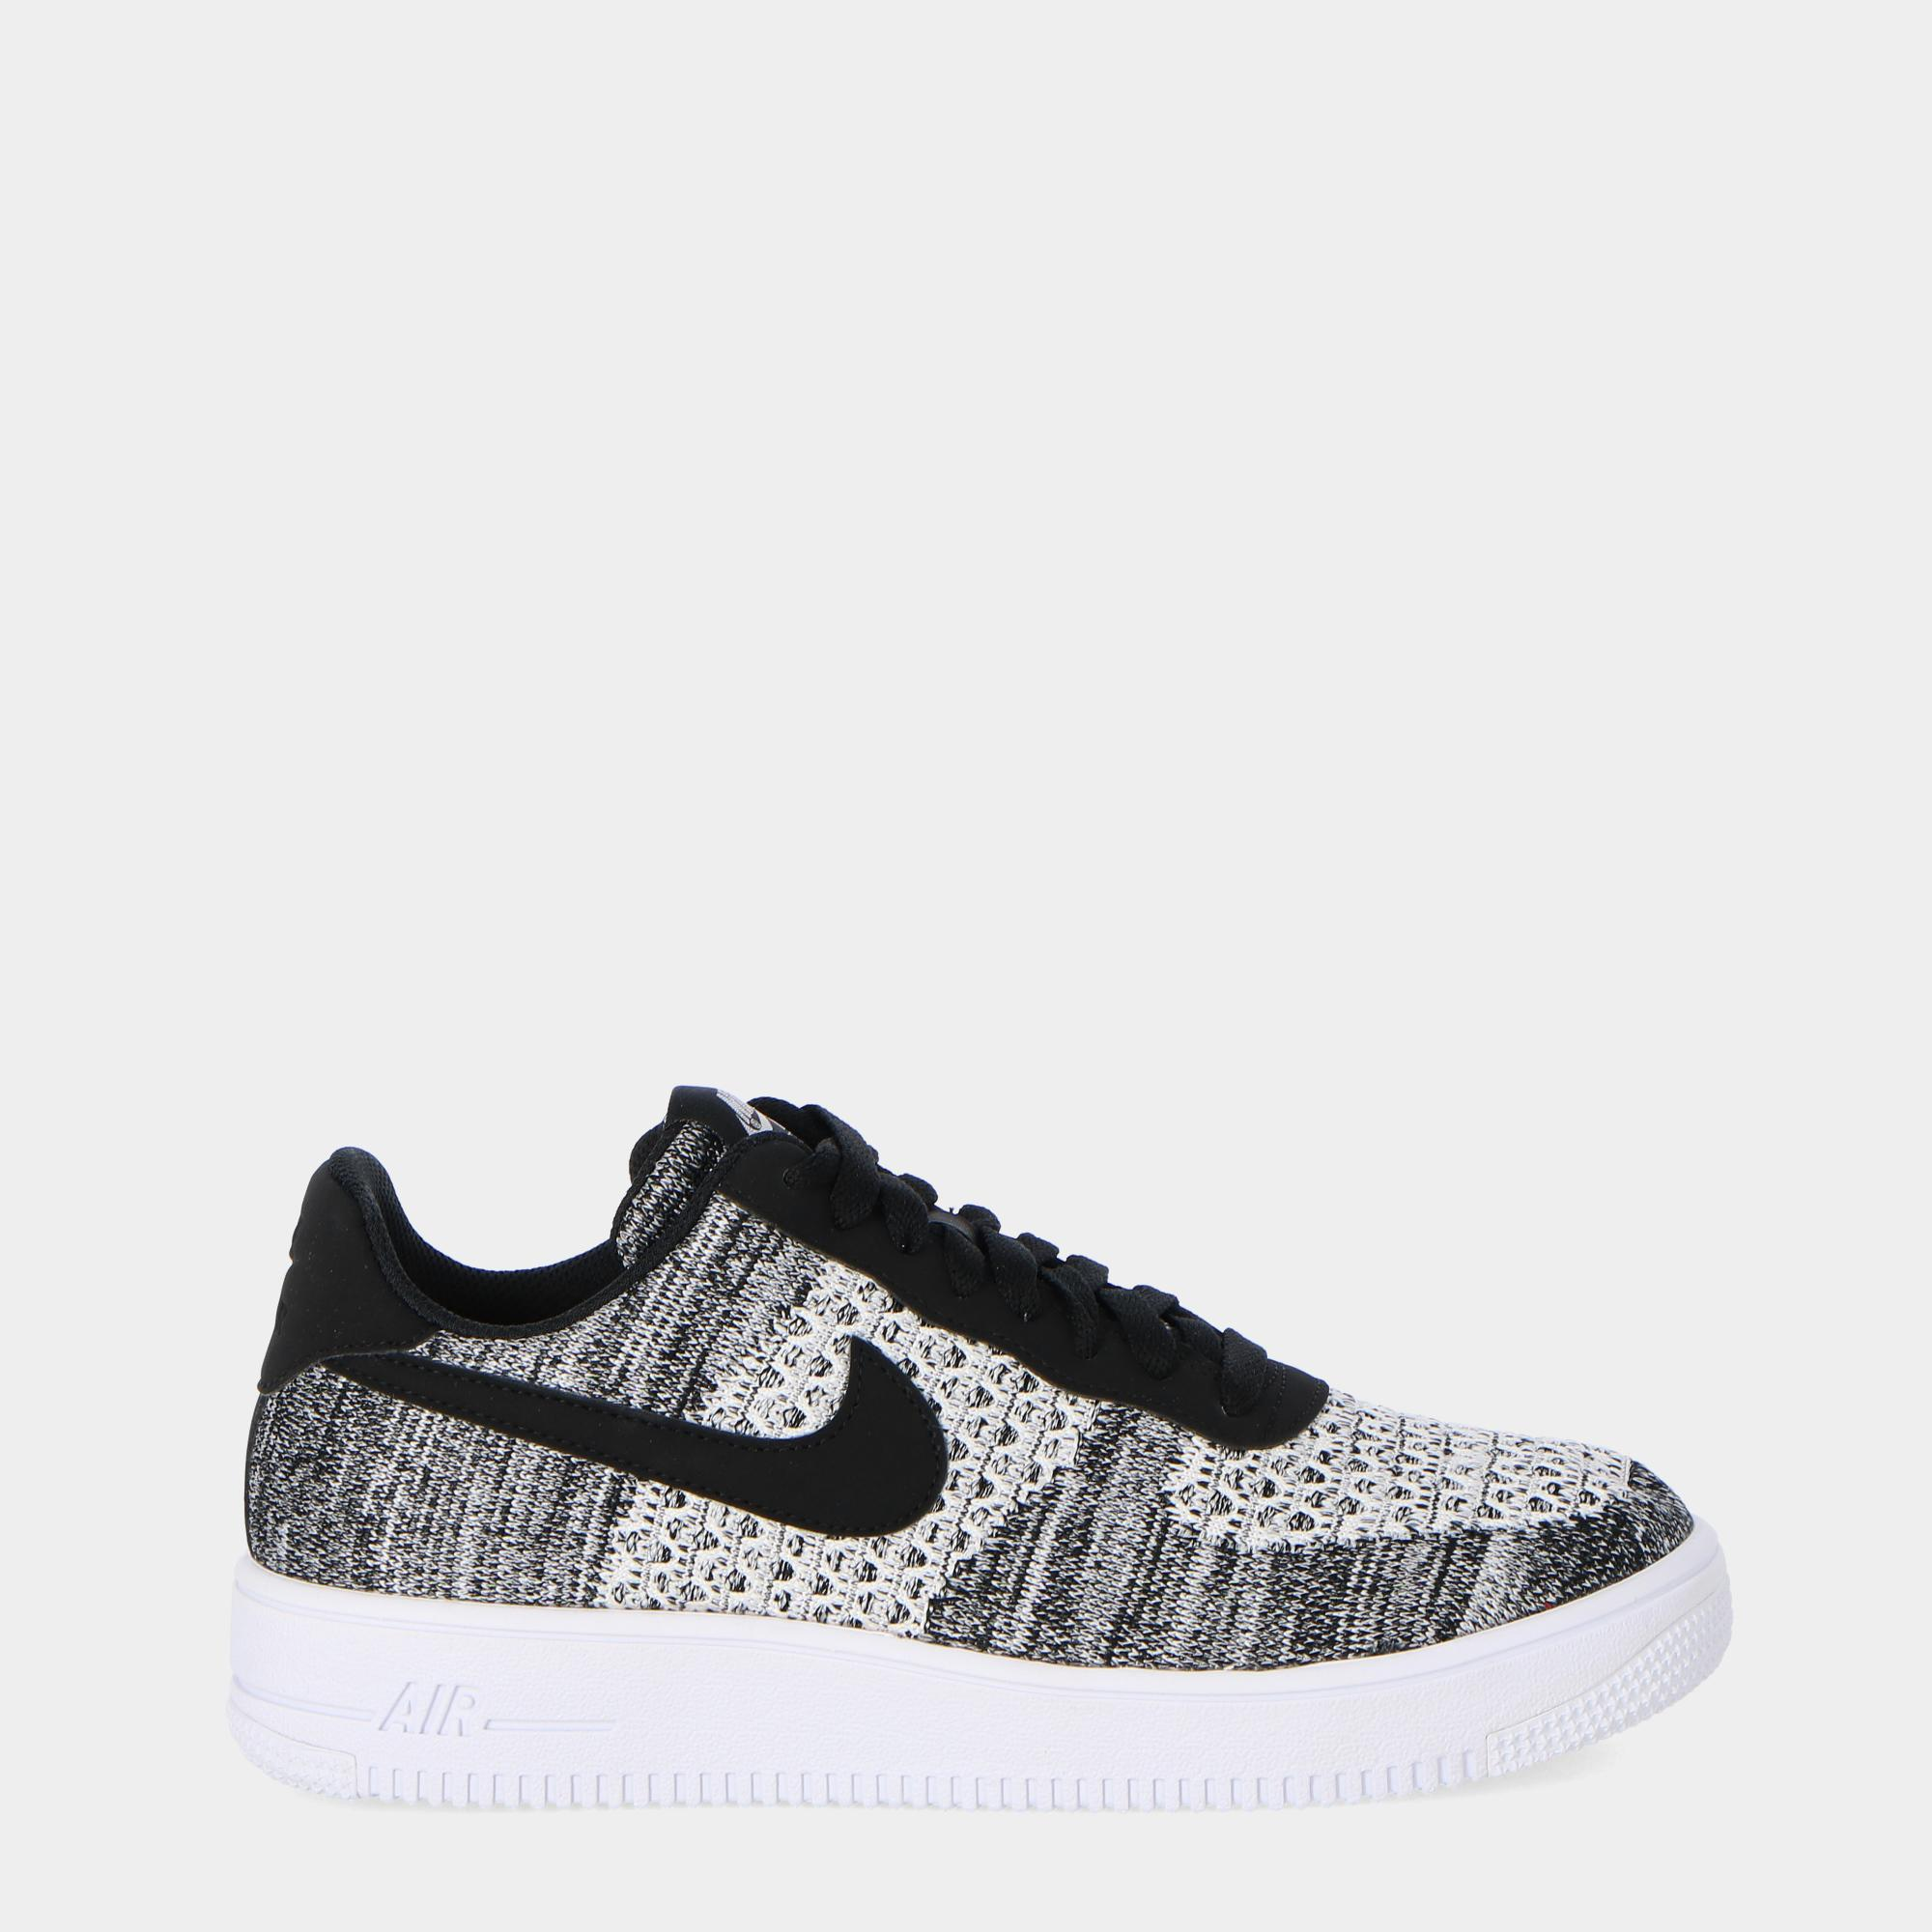 new product a250b 23a69 Nike Air Force 1 Lv8 Flyknit br   Black pure platinum blk wht